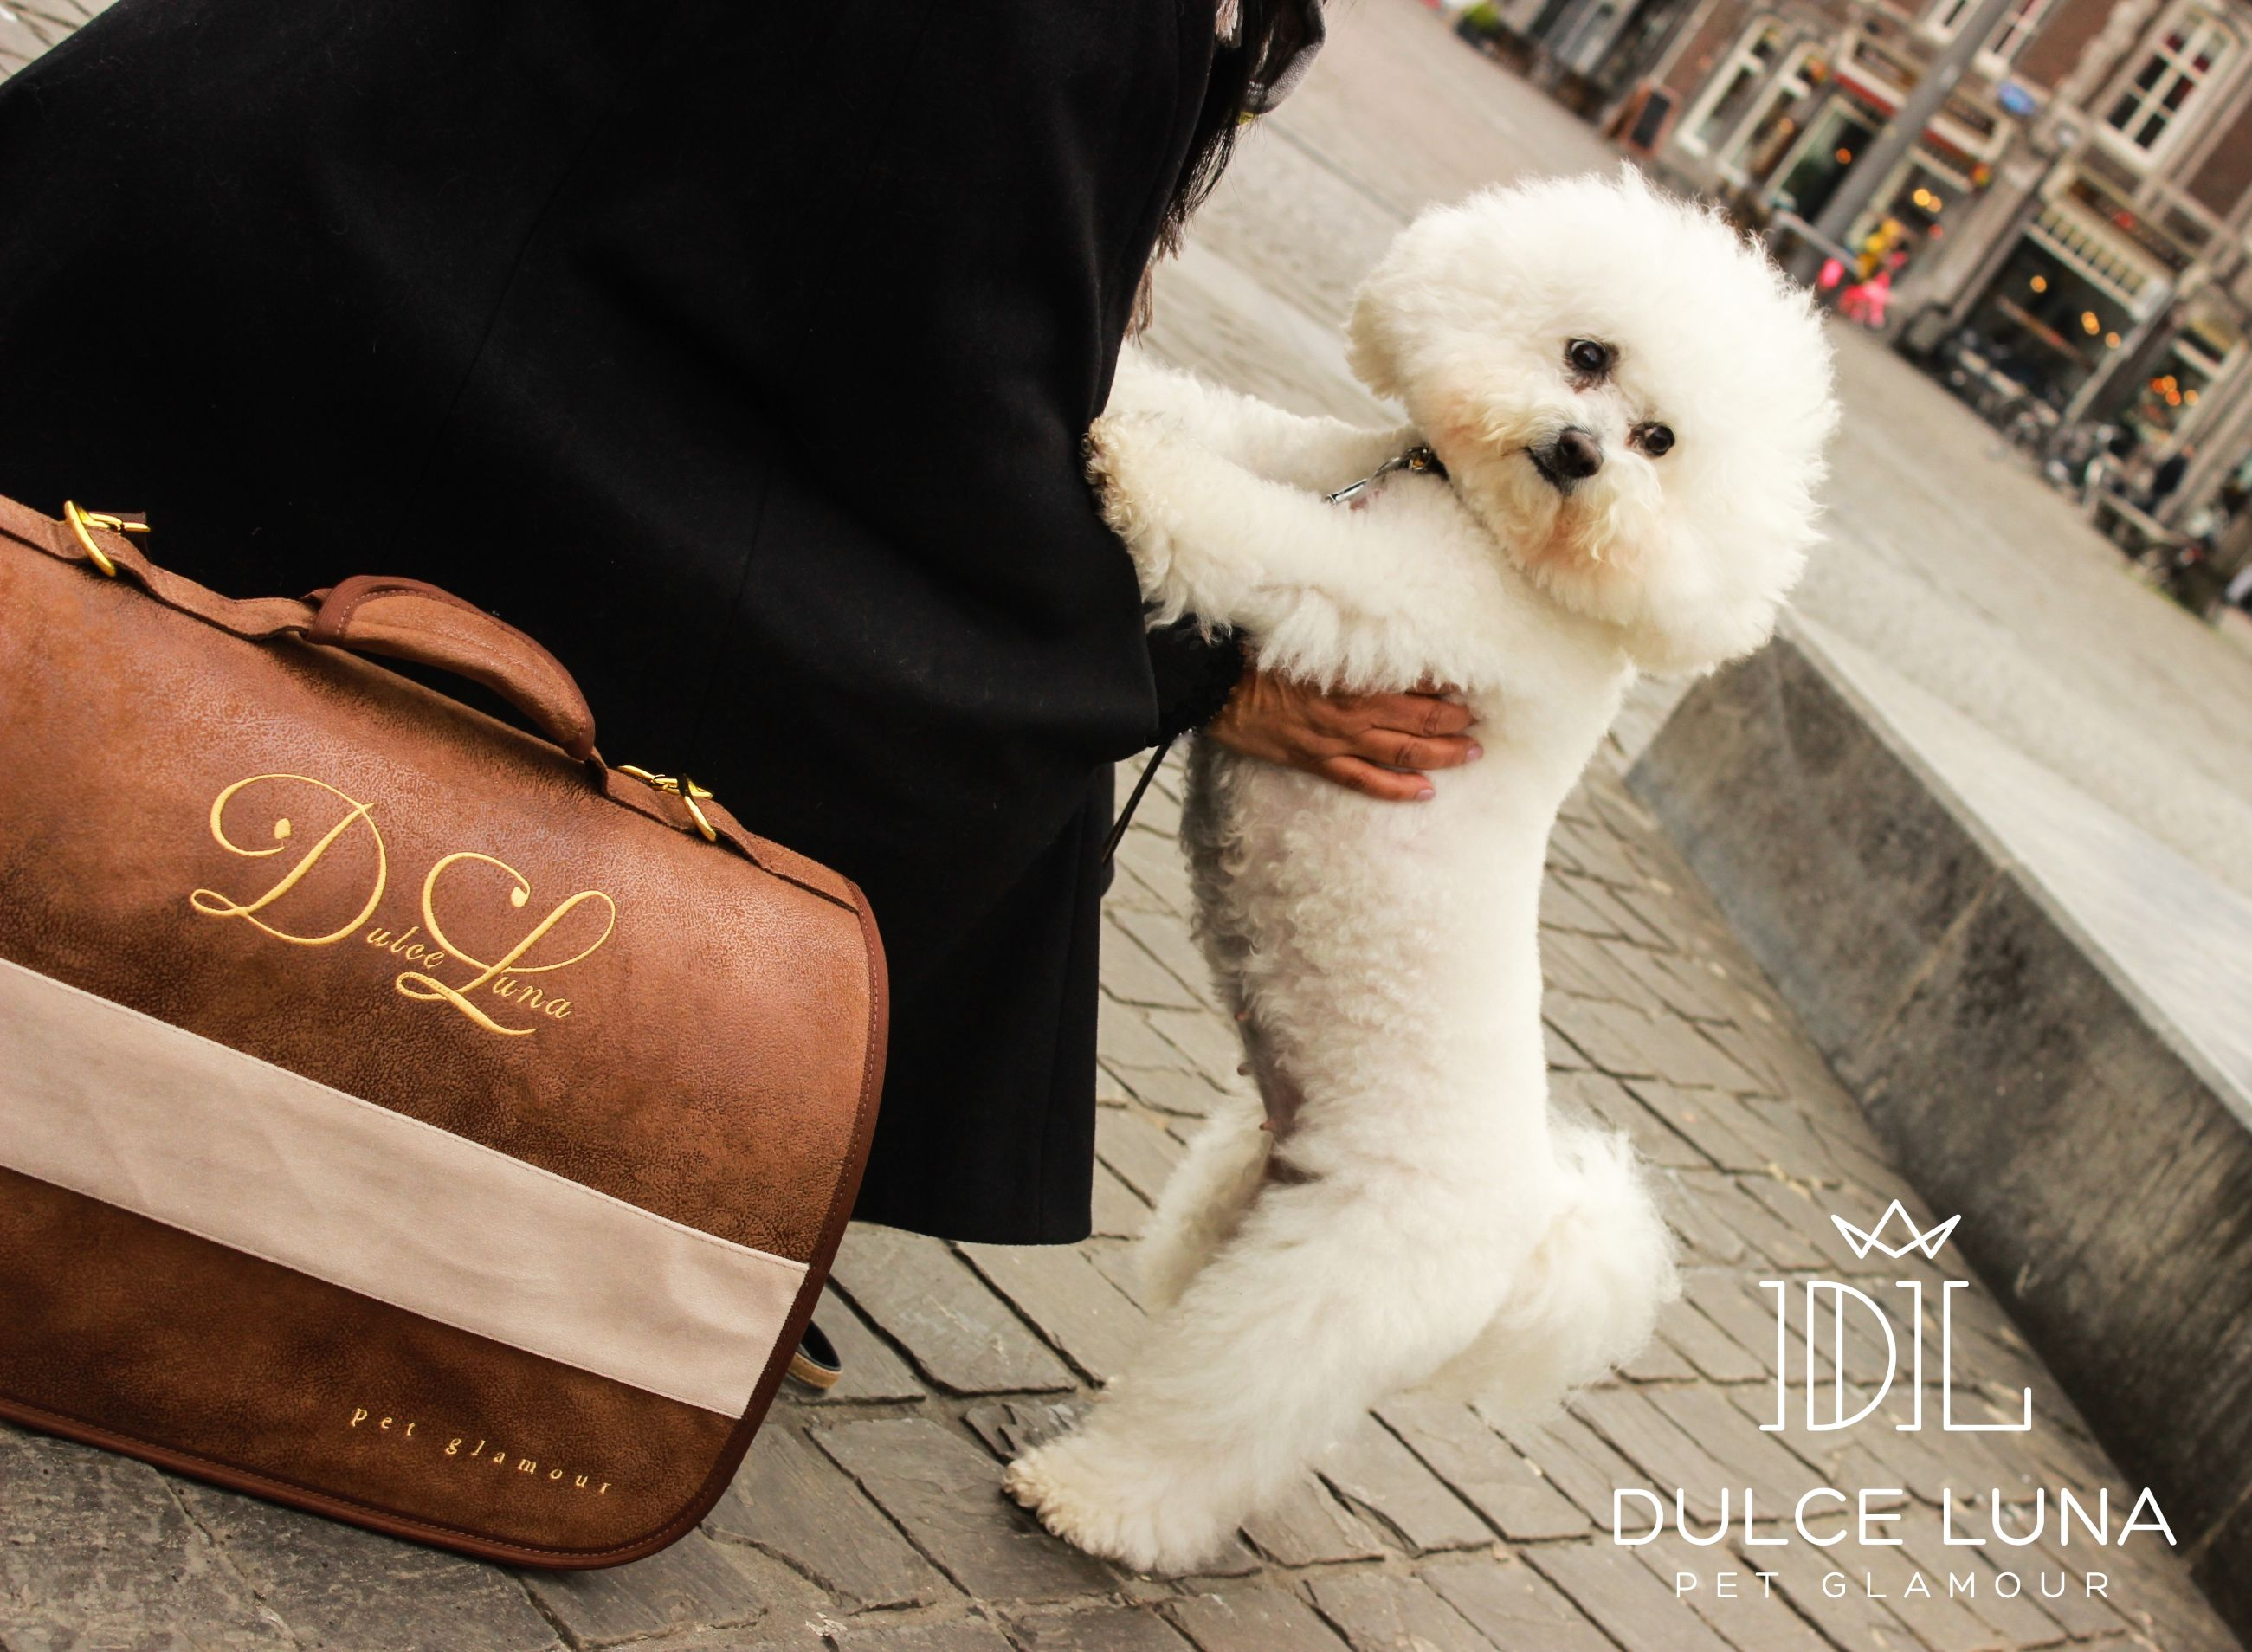 City trip! Travelling 1st class, comfortable and safe, with pet carrier Elegance. Soon available in our webshop, stay tuned. Have a great Sunday! 🐶❤